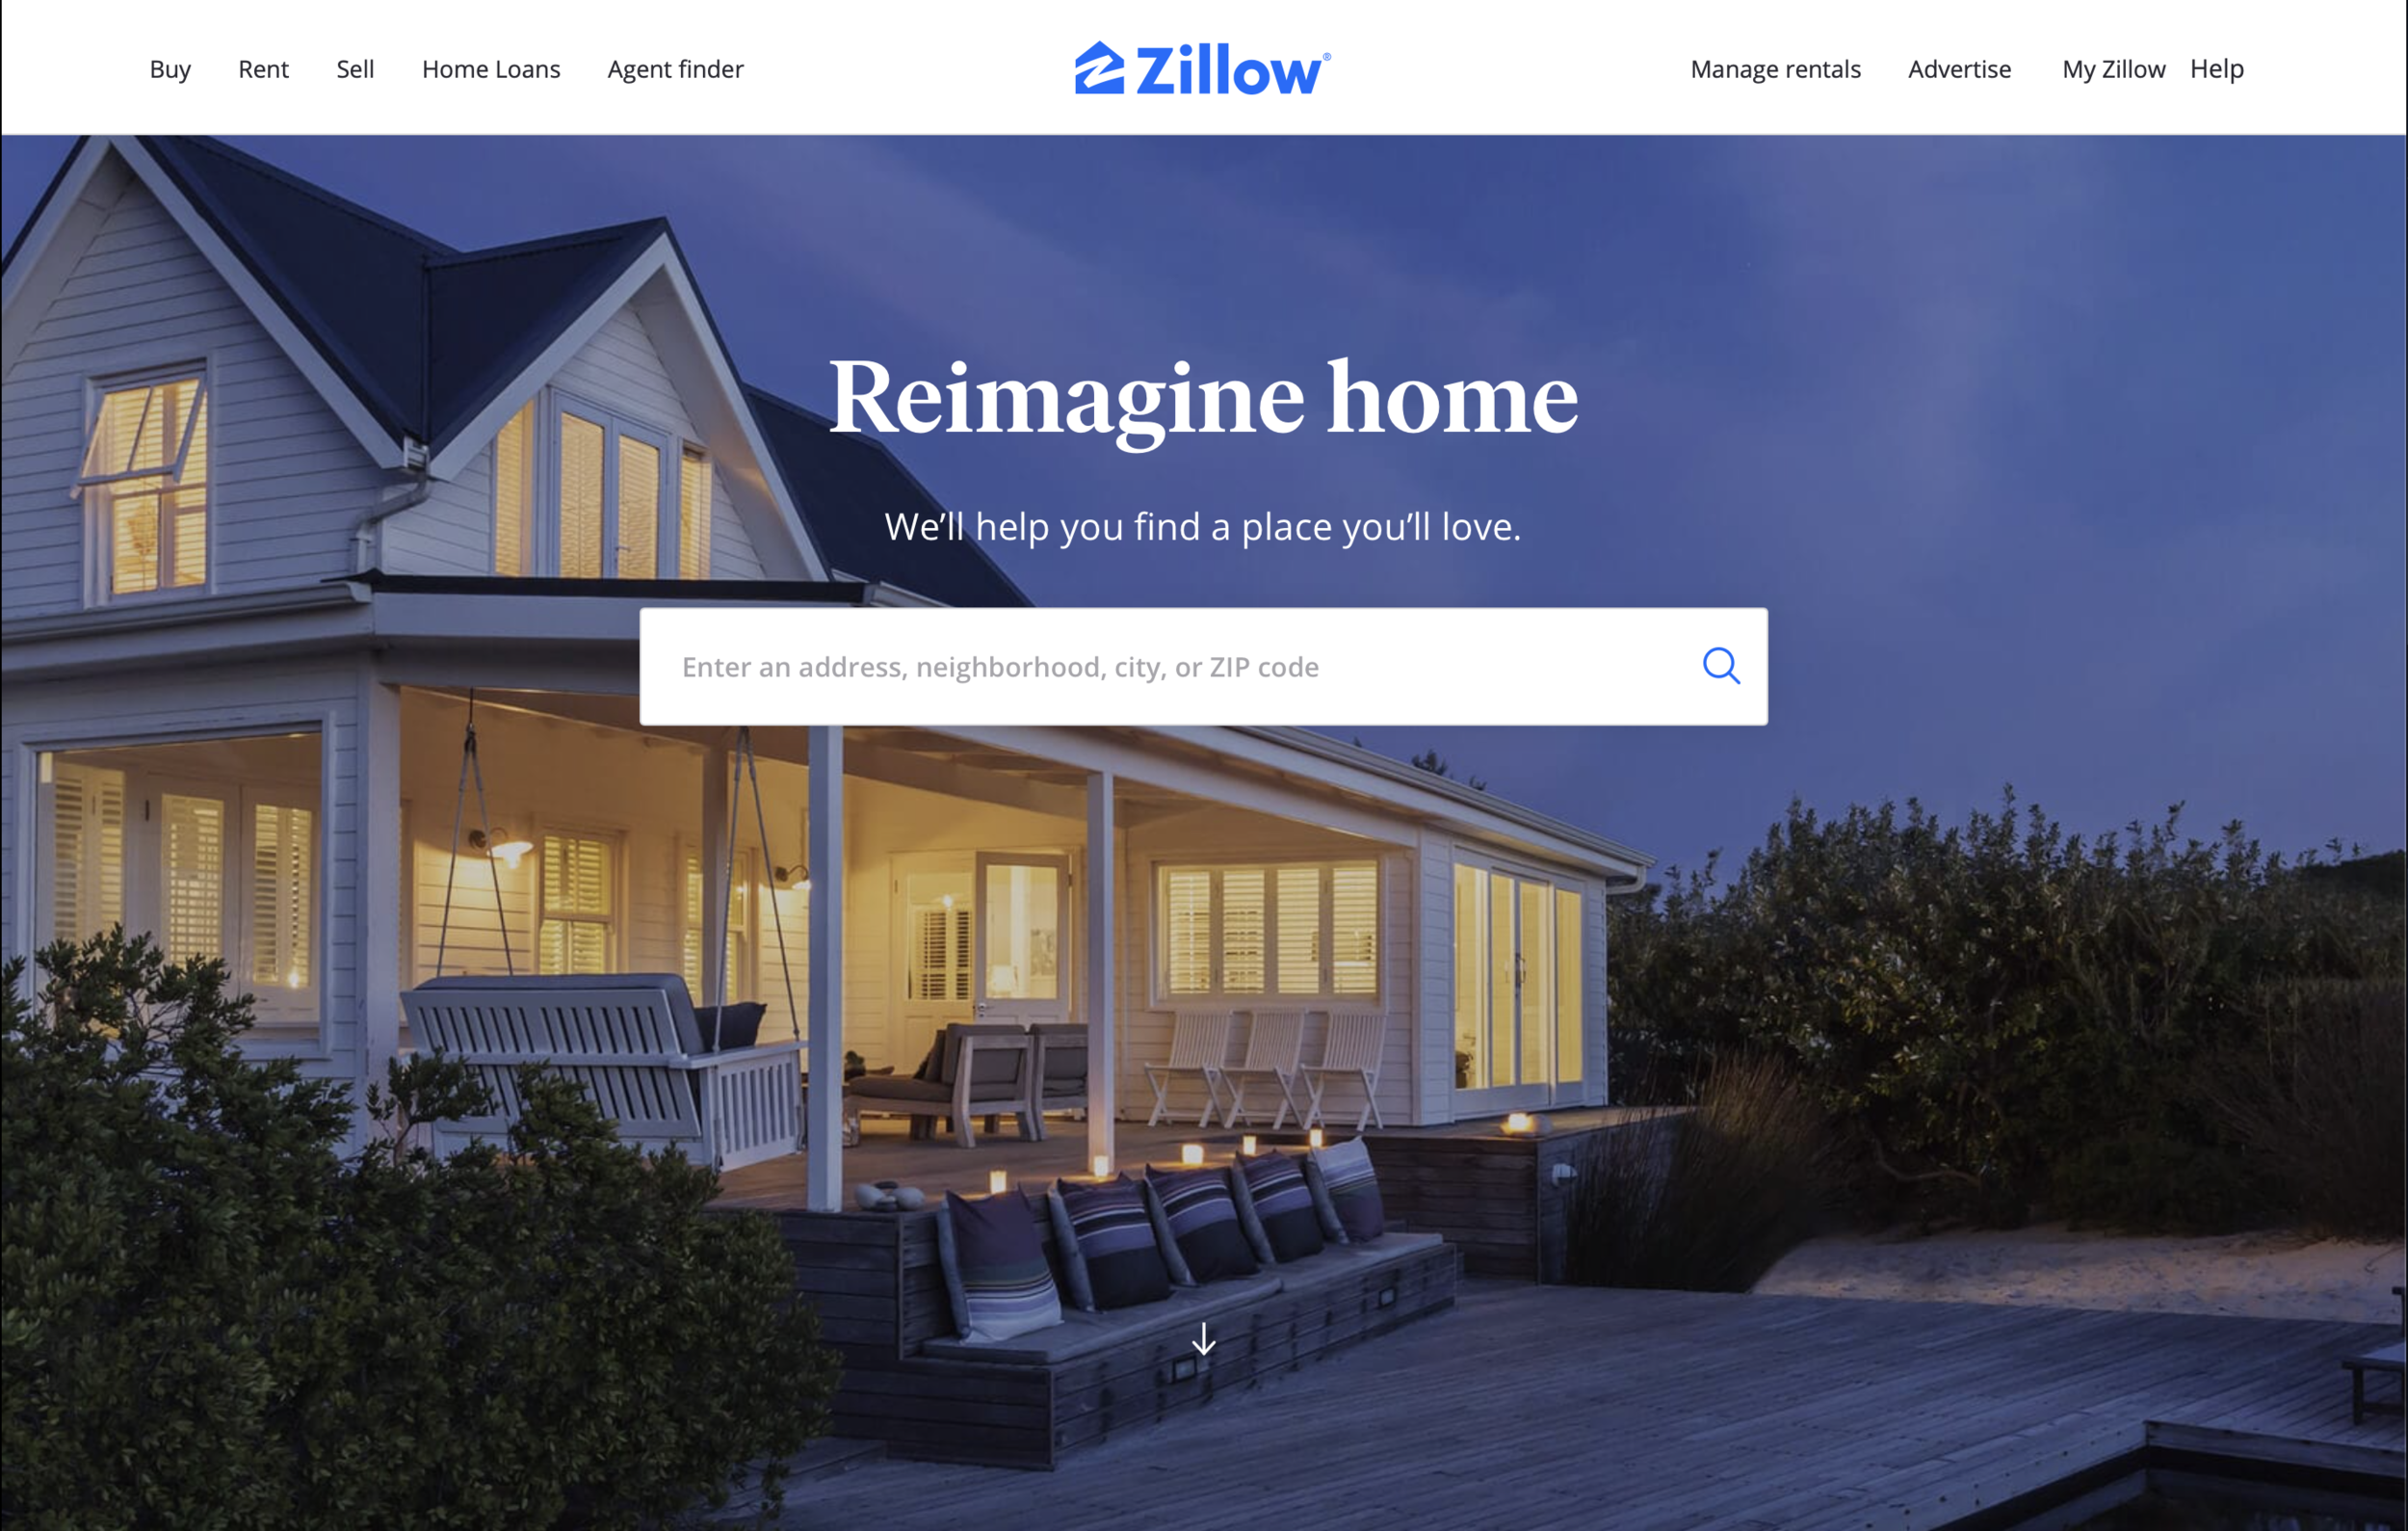 create a listing on Zillow